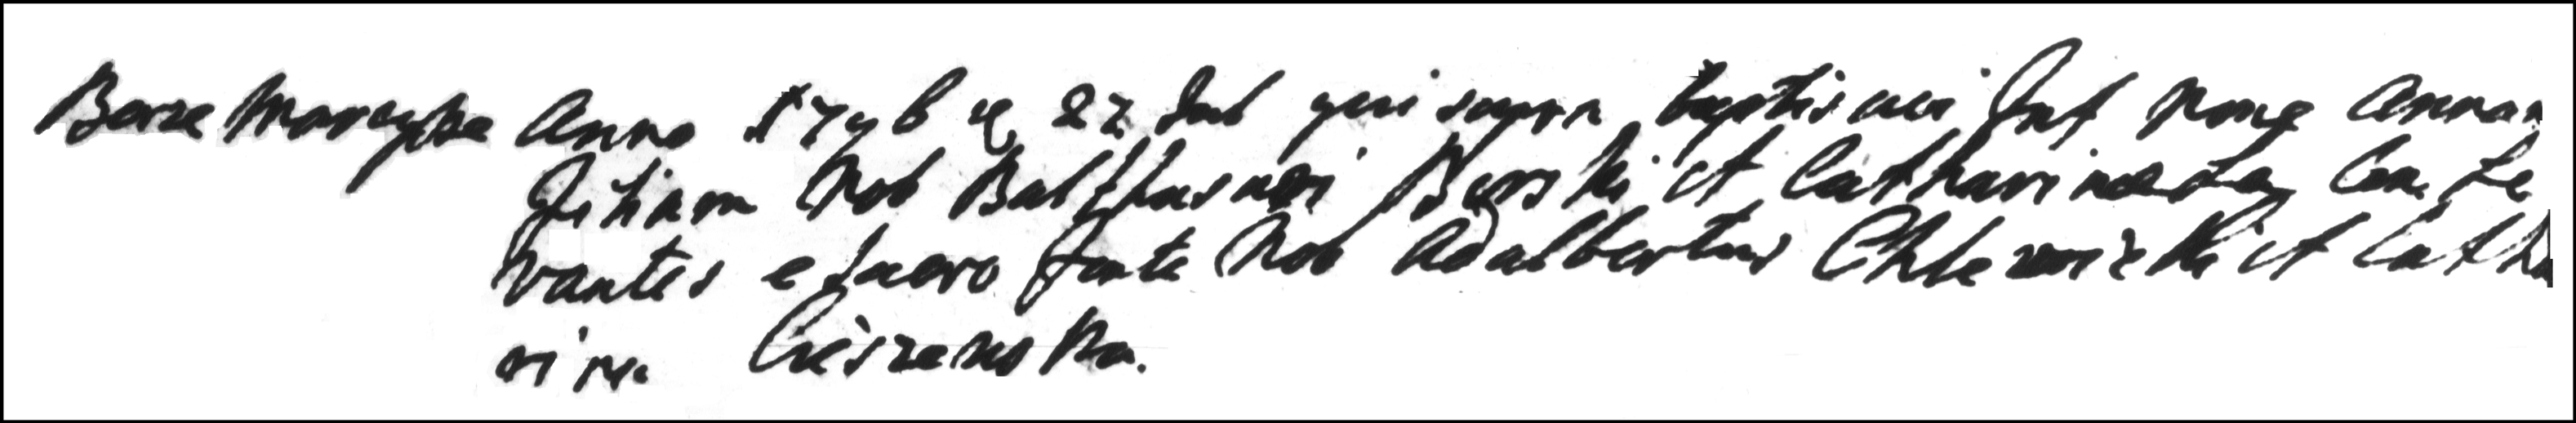 The Birth and Baptismal Record of Anna Burska - 1796